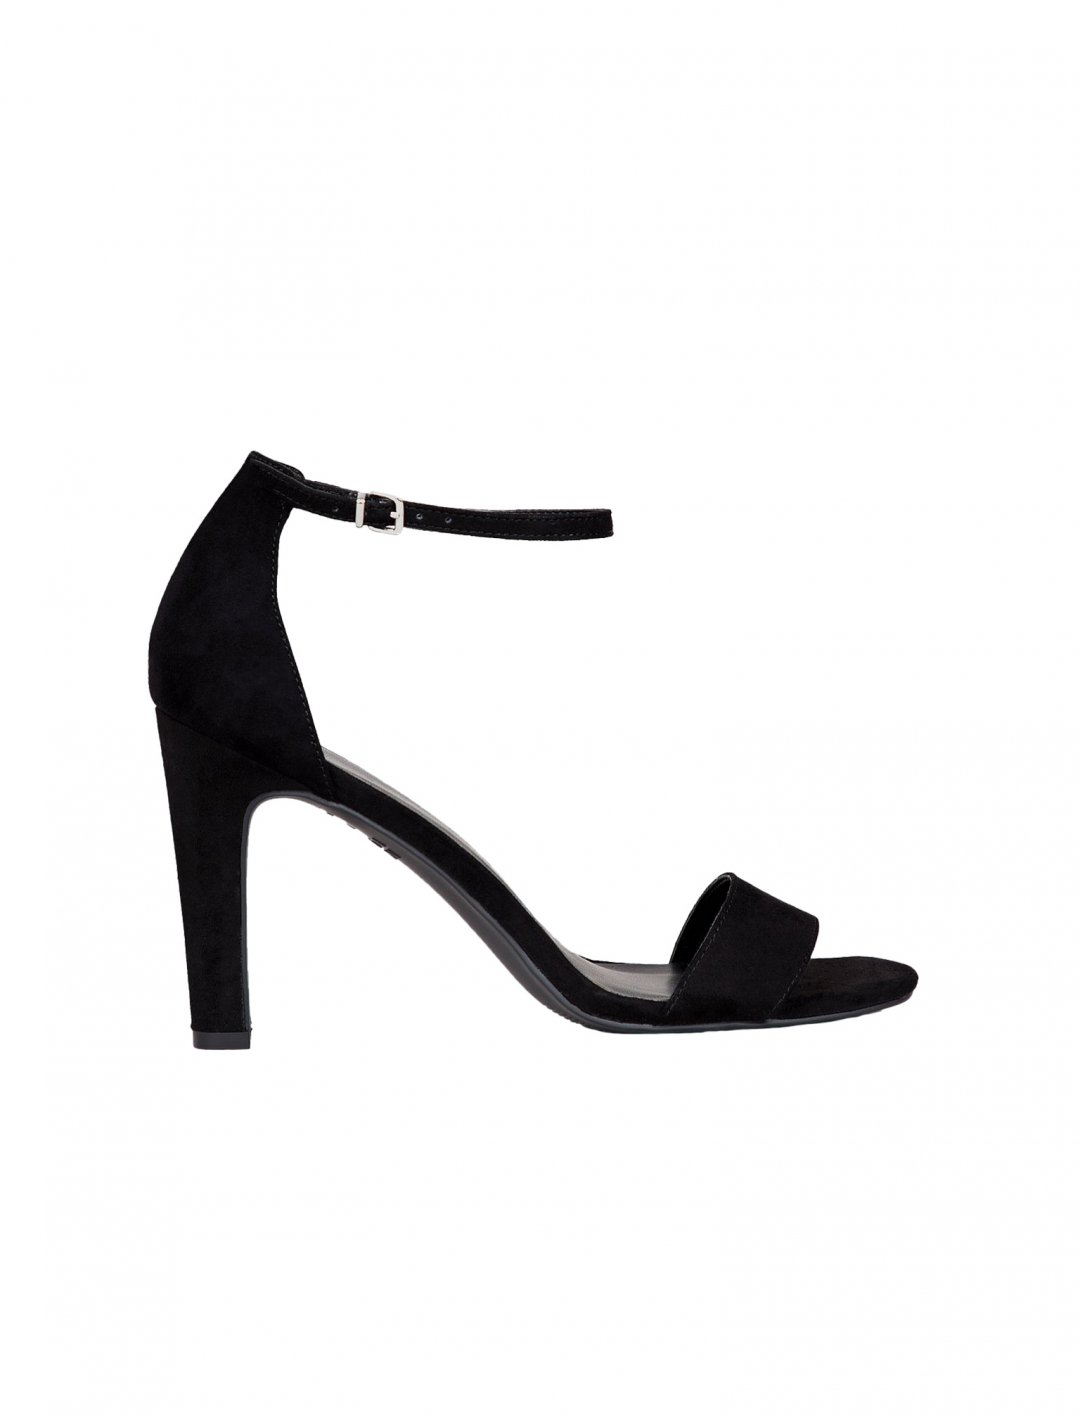 "New Look Black Heel Sandals {""id"":12,""product_section_id"":1,""name"":""Shoes"",""order"":12} New Look"